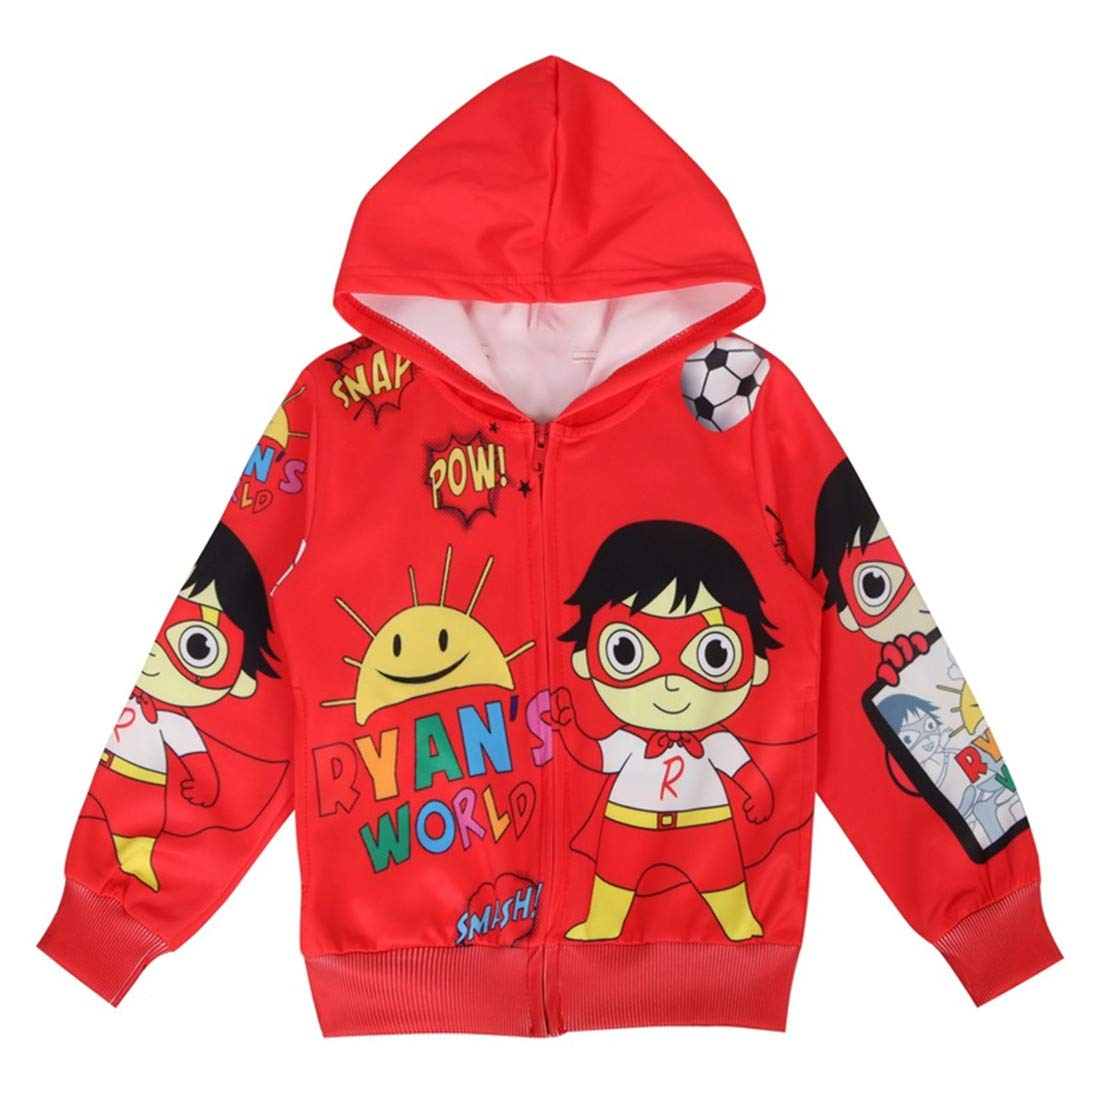 Thombase Ryans World YouTube Merch Toys Review Kids Hooded Jacket Cartoon Tops